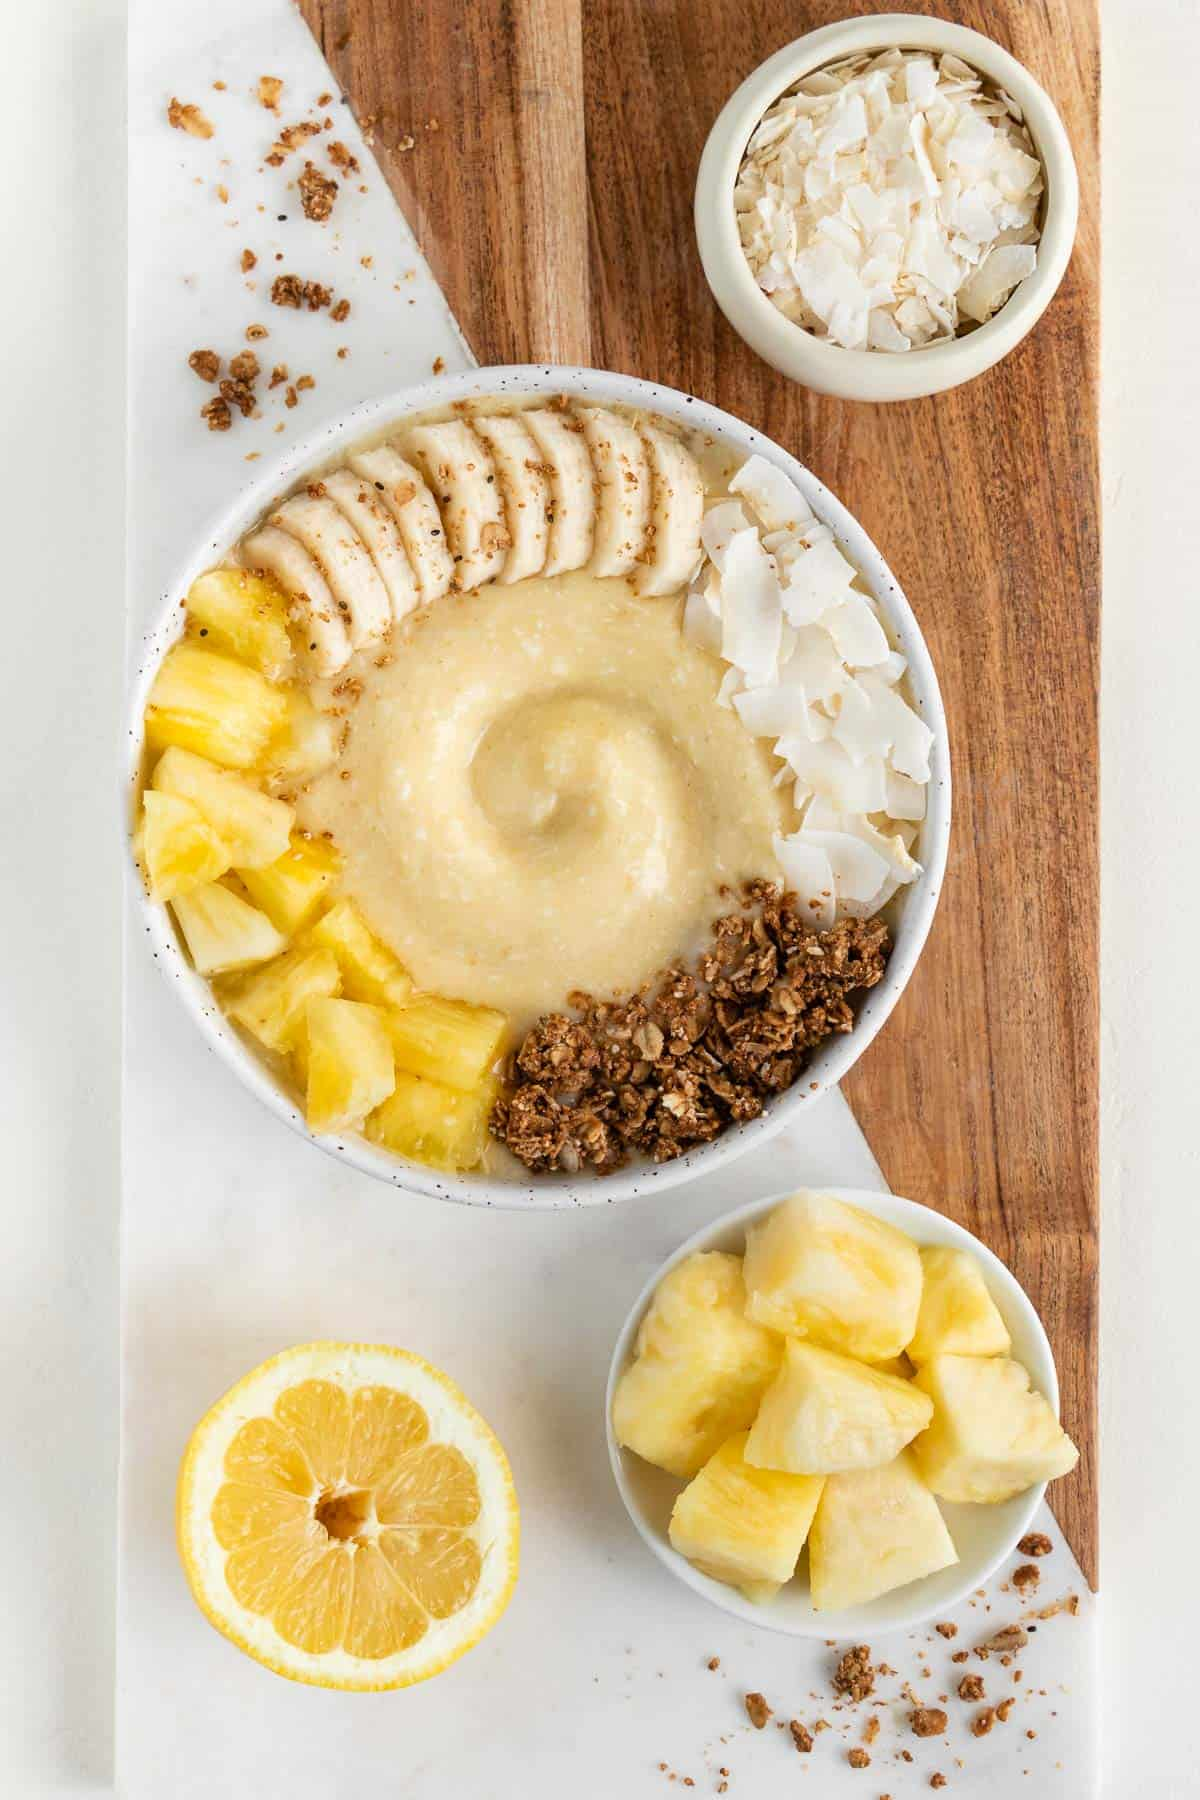 a wood and marble board topped with a piña colada smoothie bowl, bowl of coconut flakes, bowl of pineapple, and a lemon